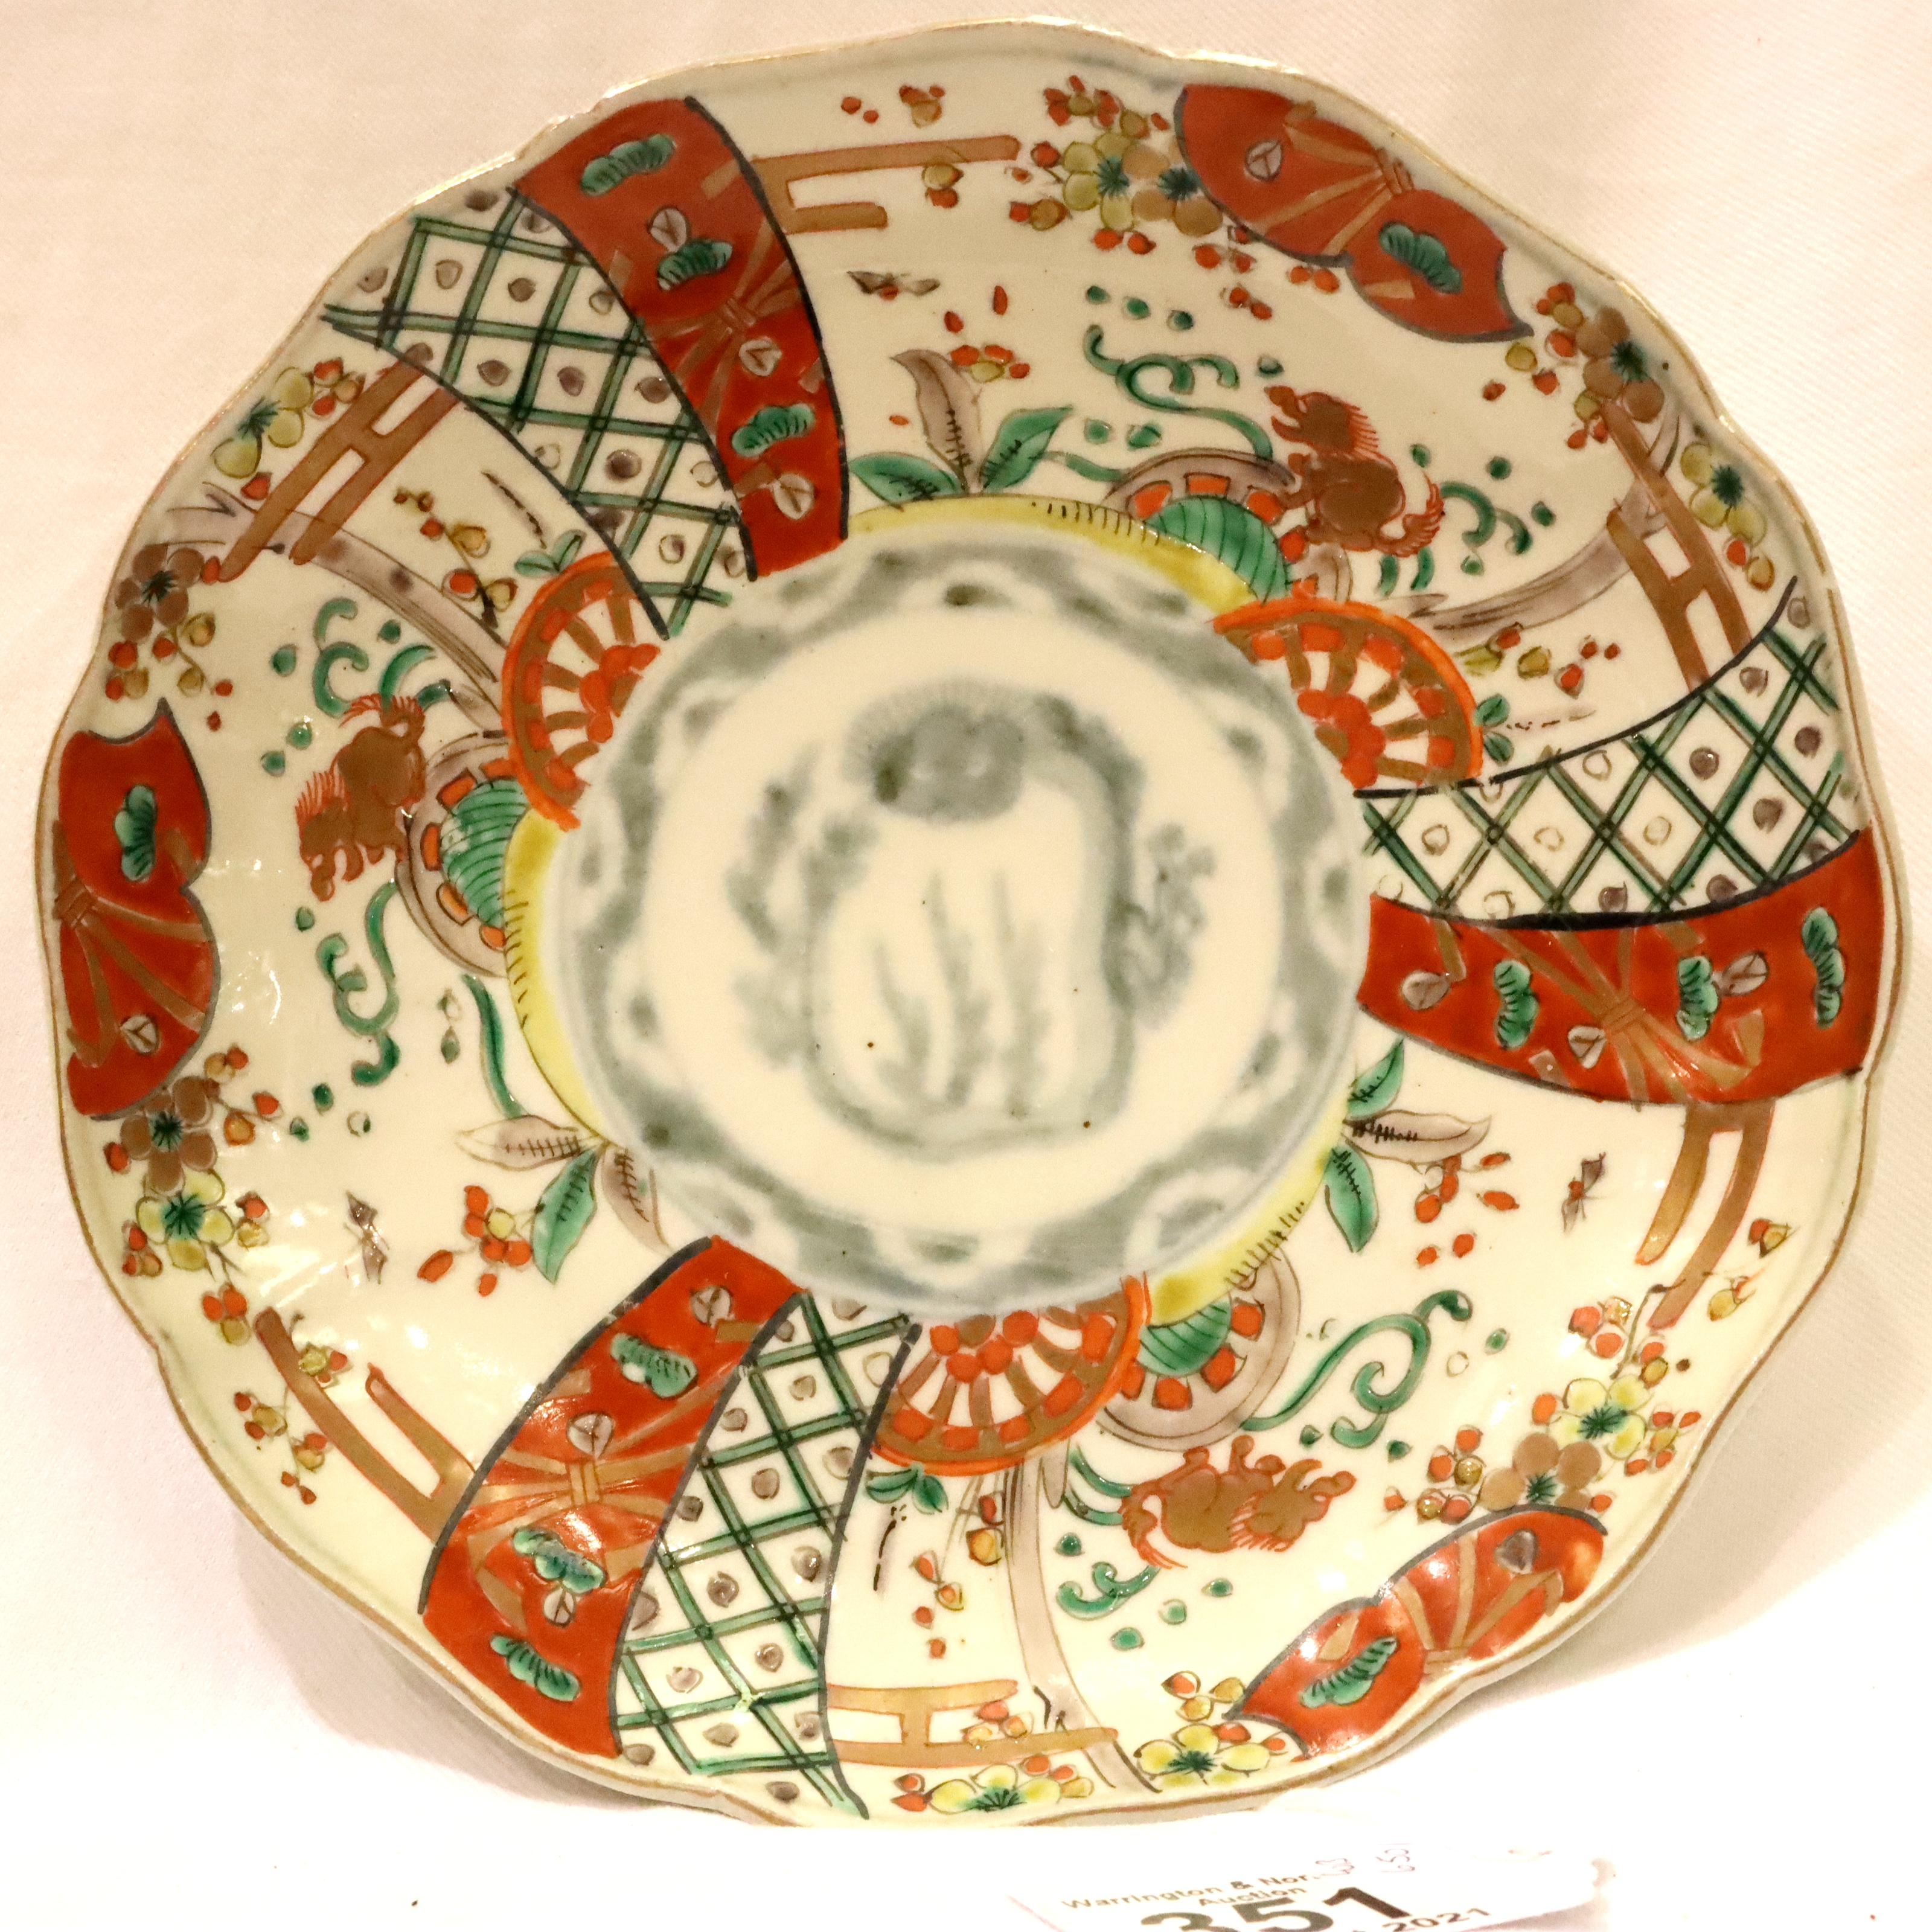 Japanese 19th century cabinet plate, D: 21 cm. P&P Group 2 (£18+VAT for the first lot and £3+VAT for - Image 2 of 3